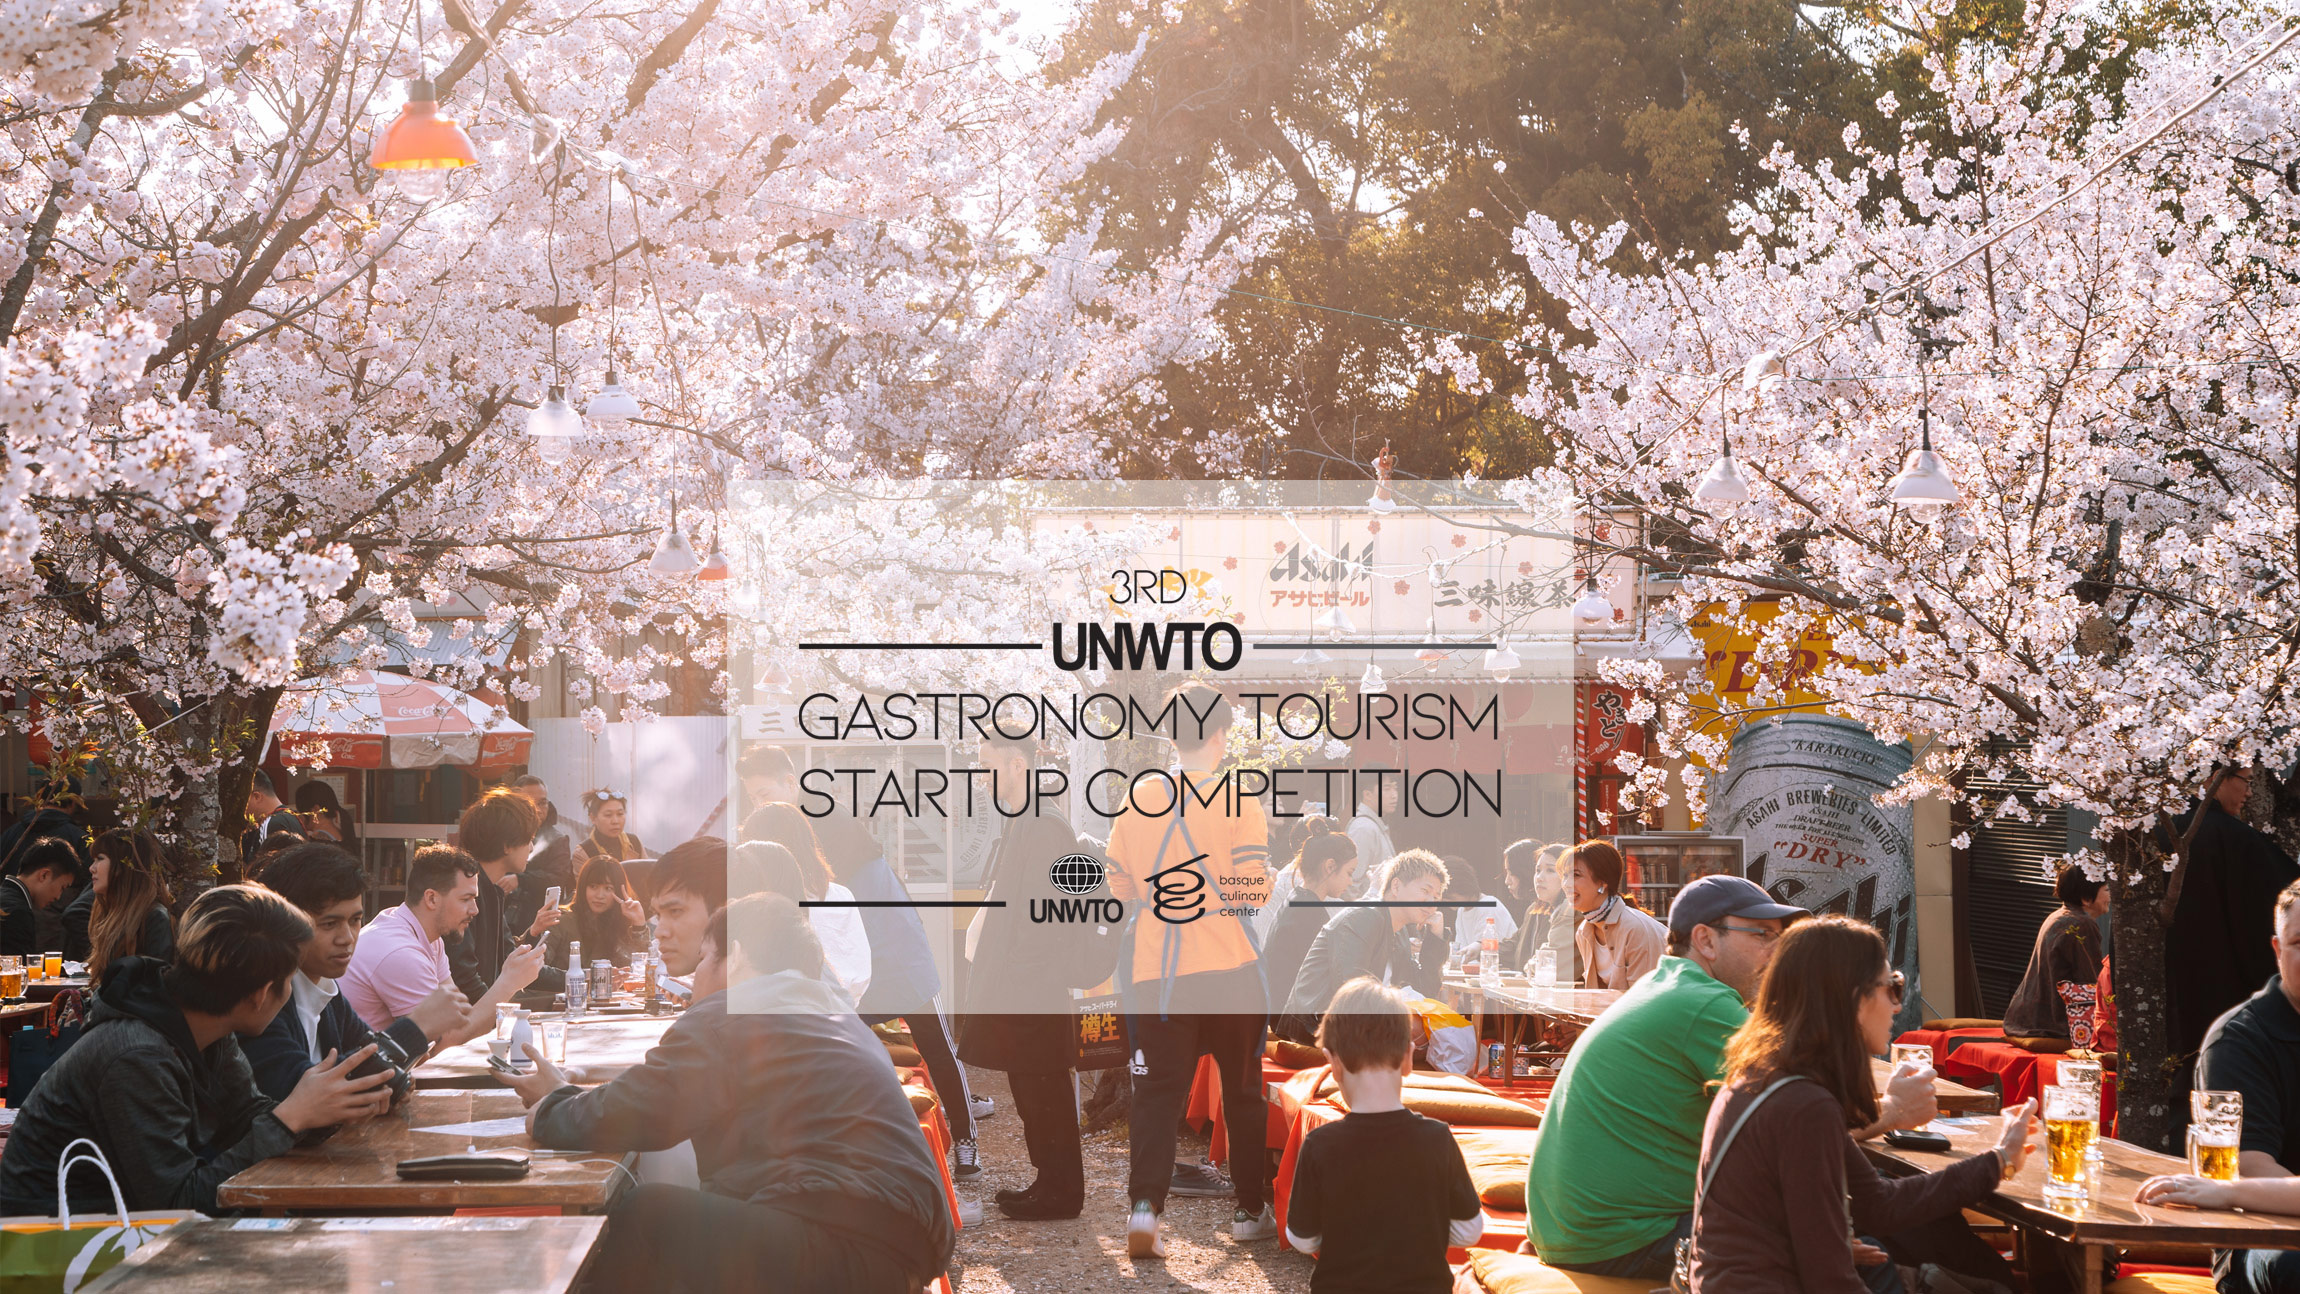 3rd GLOBAL GASTRONOMY TOURISM STARTUP COMPETITION